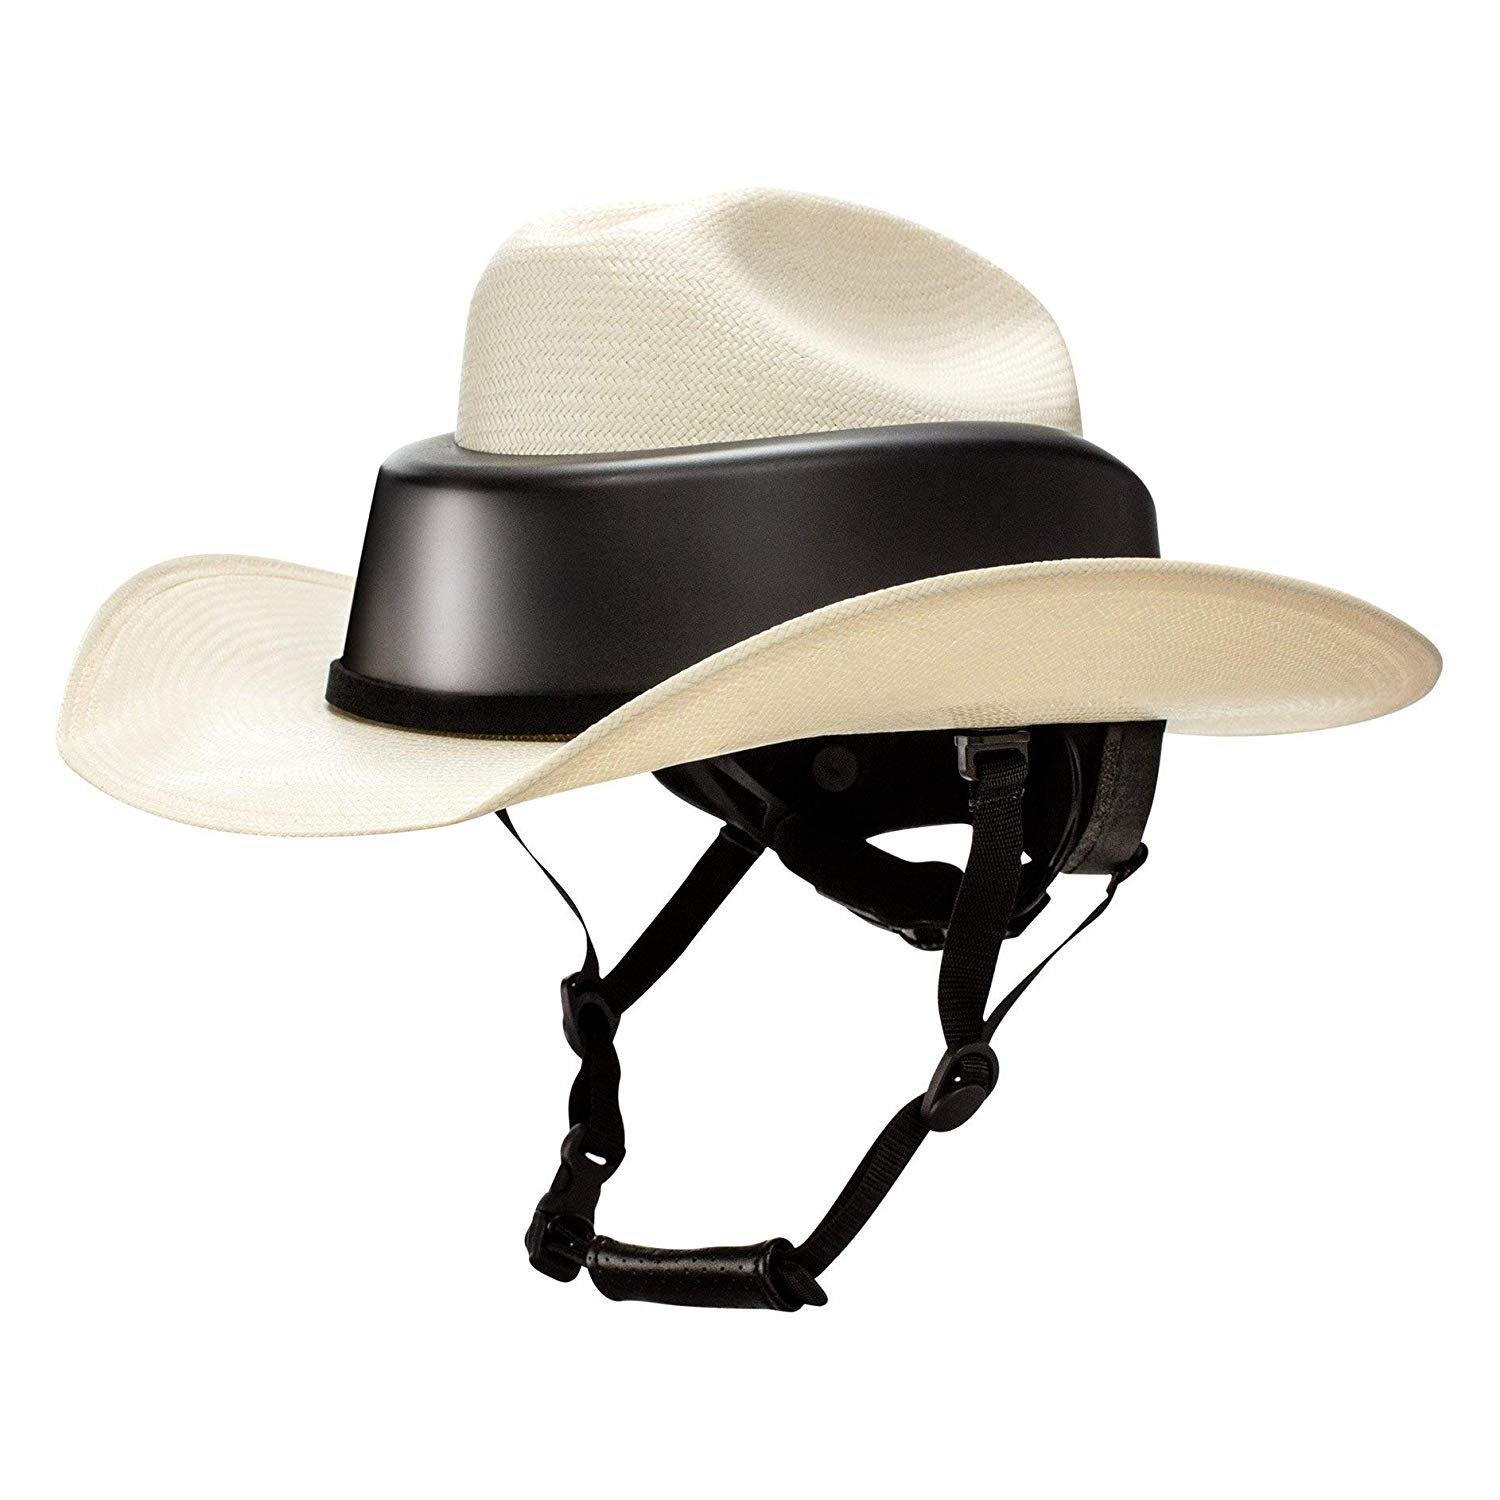 Details about Resistol Ride Safe Western Hat Helmet Natural Straw 8c18a514c28